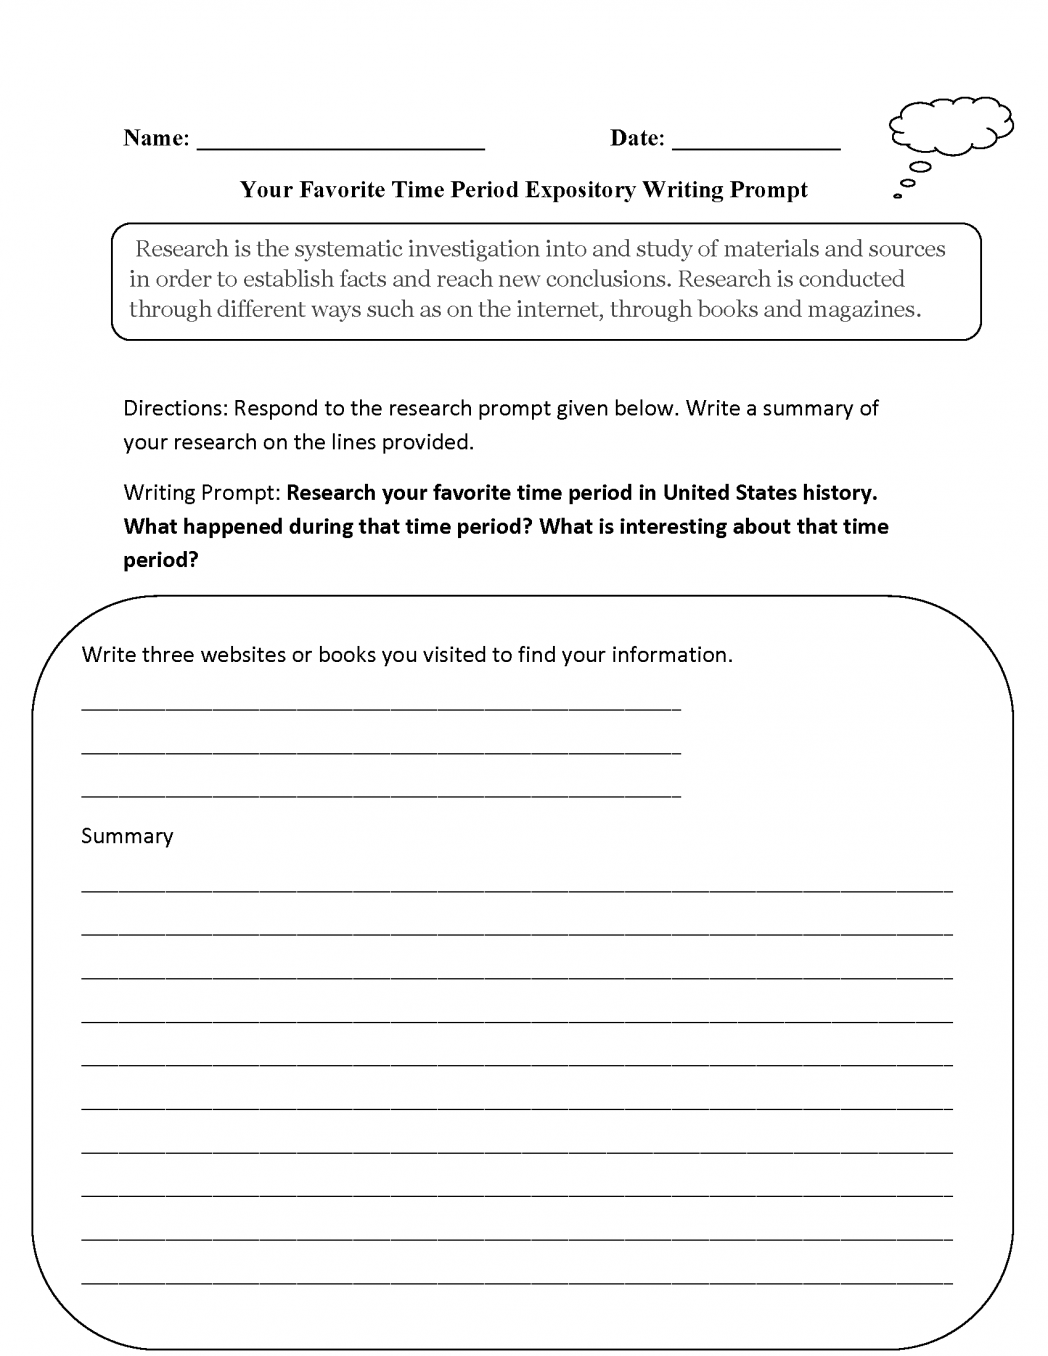 018 Essay Example Good Informative Topics Prompts Favorite Time Period Expository Writing P To Write An On The Topic Of Immigration Remarkable For High School 4th Grade Full